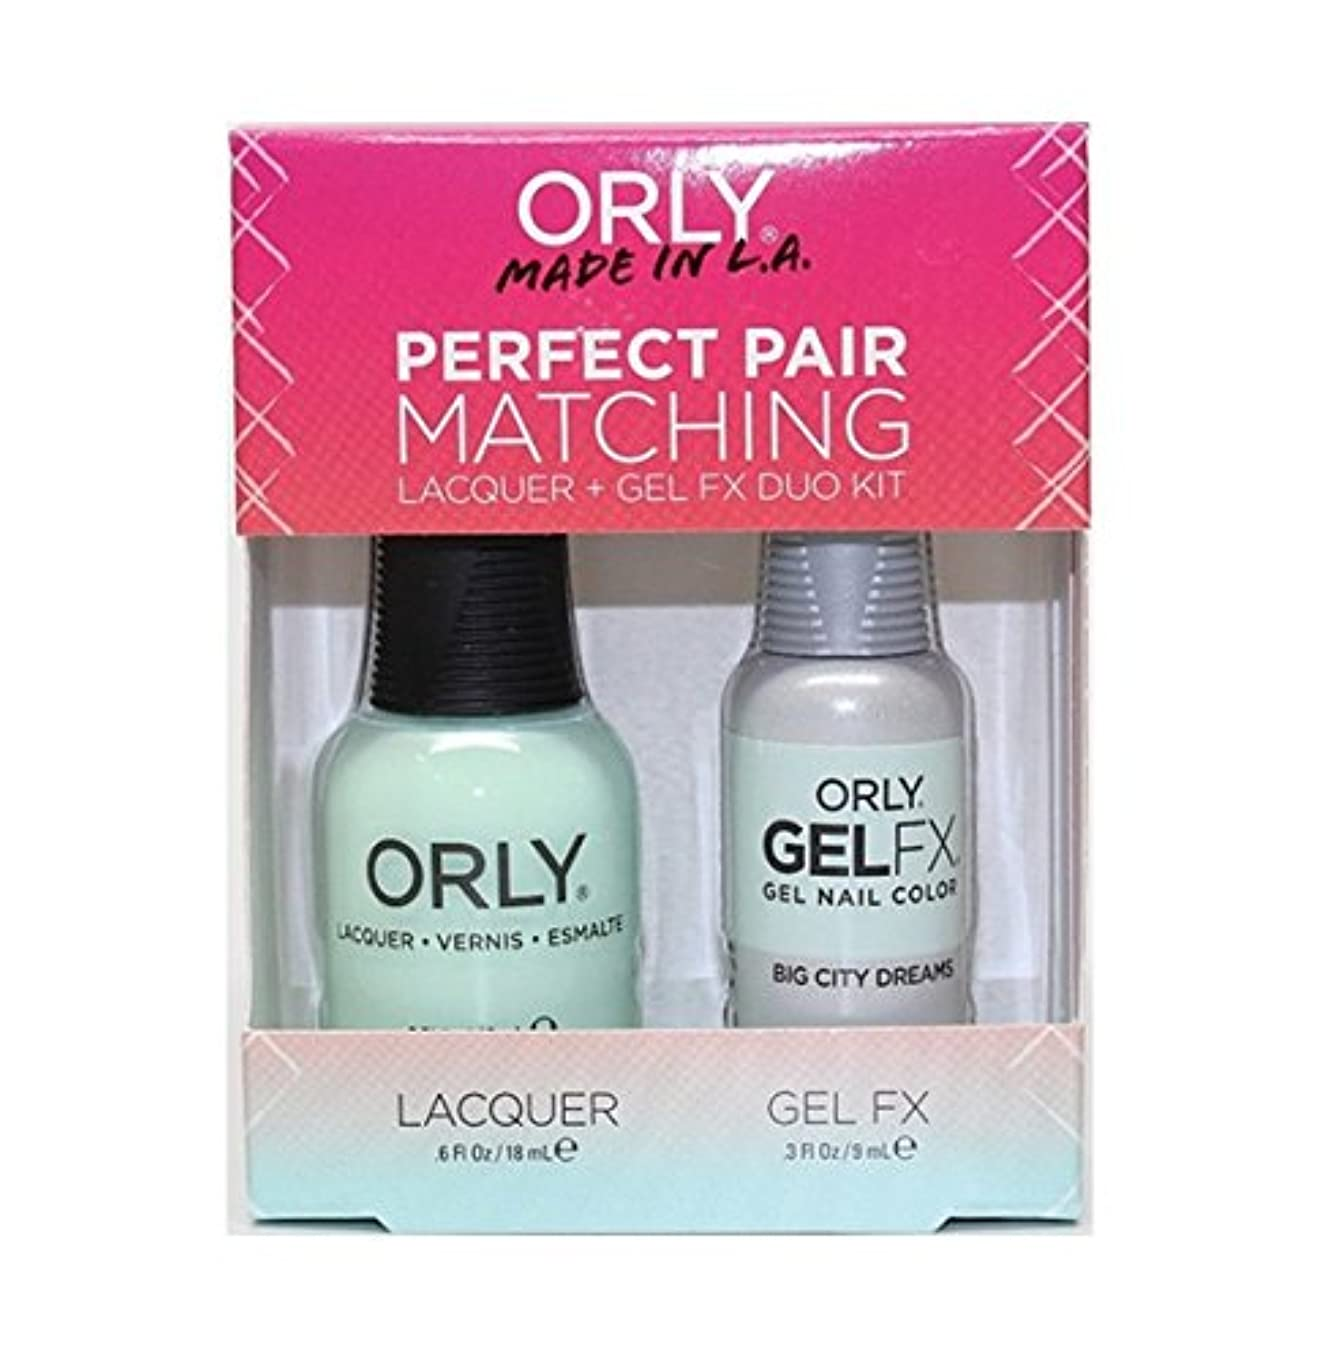 第九スタック肘掛け椅子Orly - Perfect Pair Matching Lacquer+Gel FX Kit - Big City Dreams - 0.6 oz / 0.3 oz